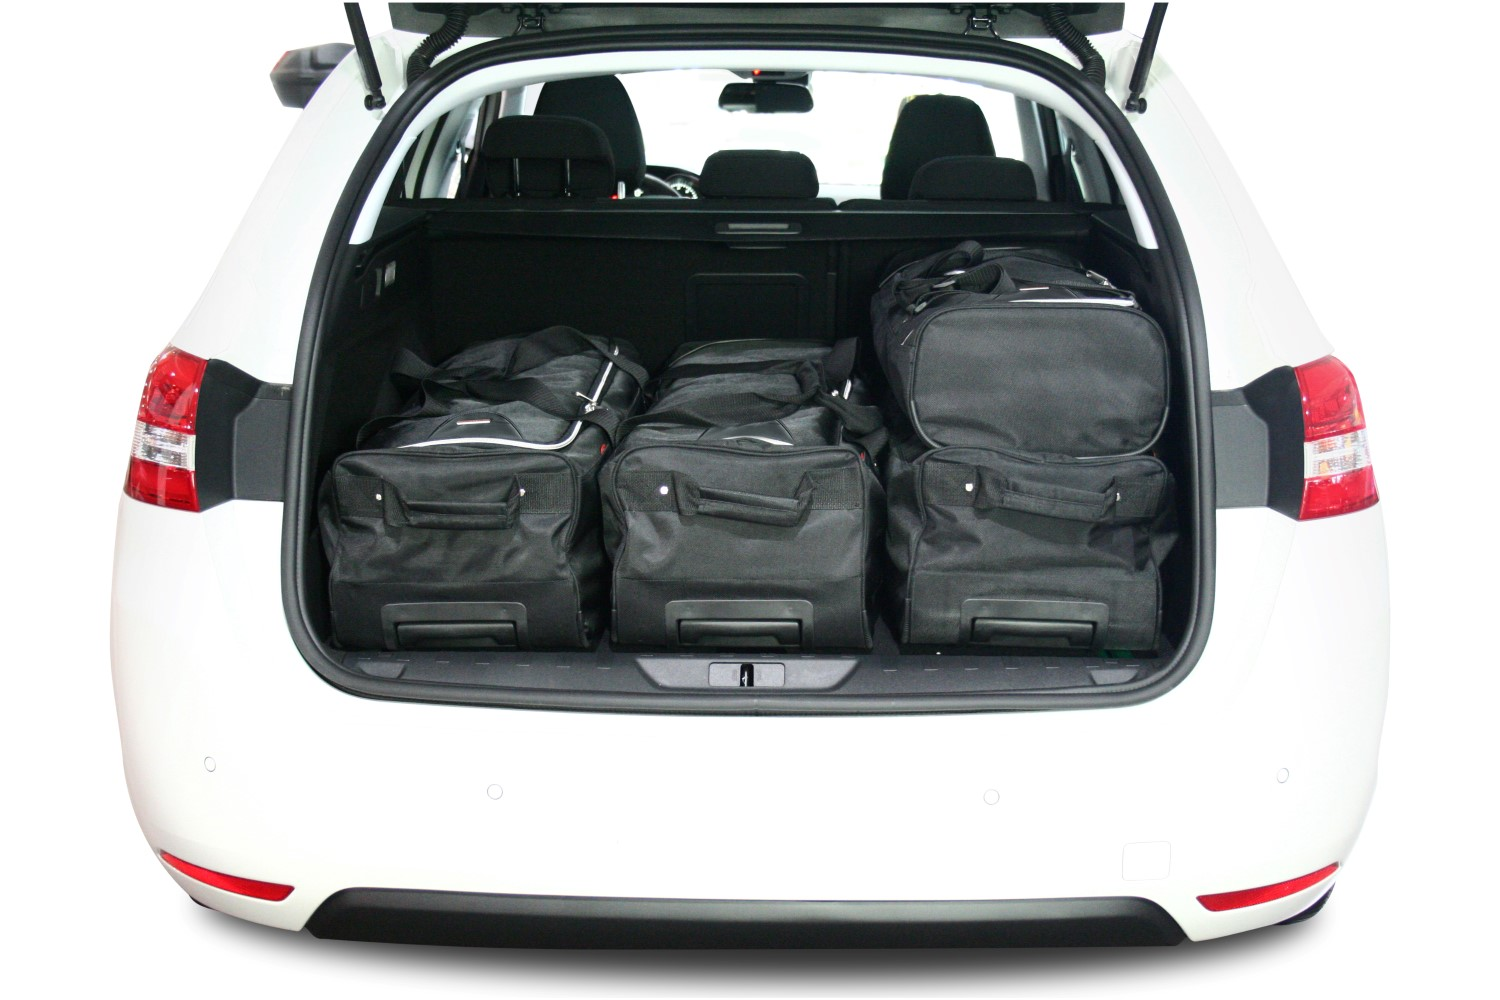 308 peugeot 308 ii sw 2013 present car bags travel bags. Black Bedroom Furniture Sets. Home Design Ideas